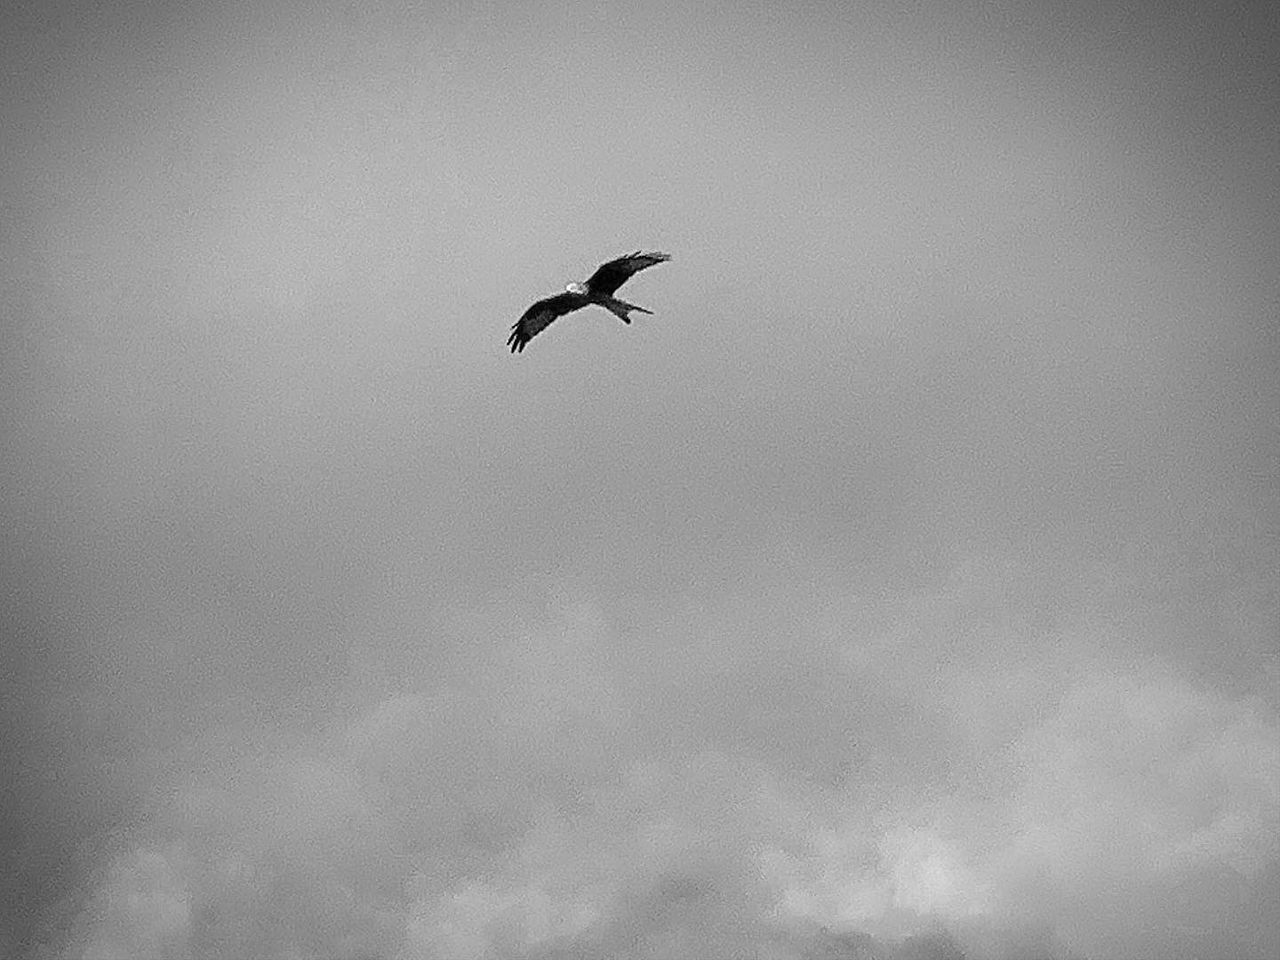 bird, animals in the wild, animal wildlife, animal themes, flying, vertebrate, animal, low angle view, sky, one animal, spread wings, cloud - sky, mid-air, day, no people, nature, beauty in nature, motion, outdoors, silhouette, eagle